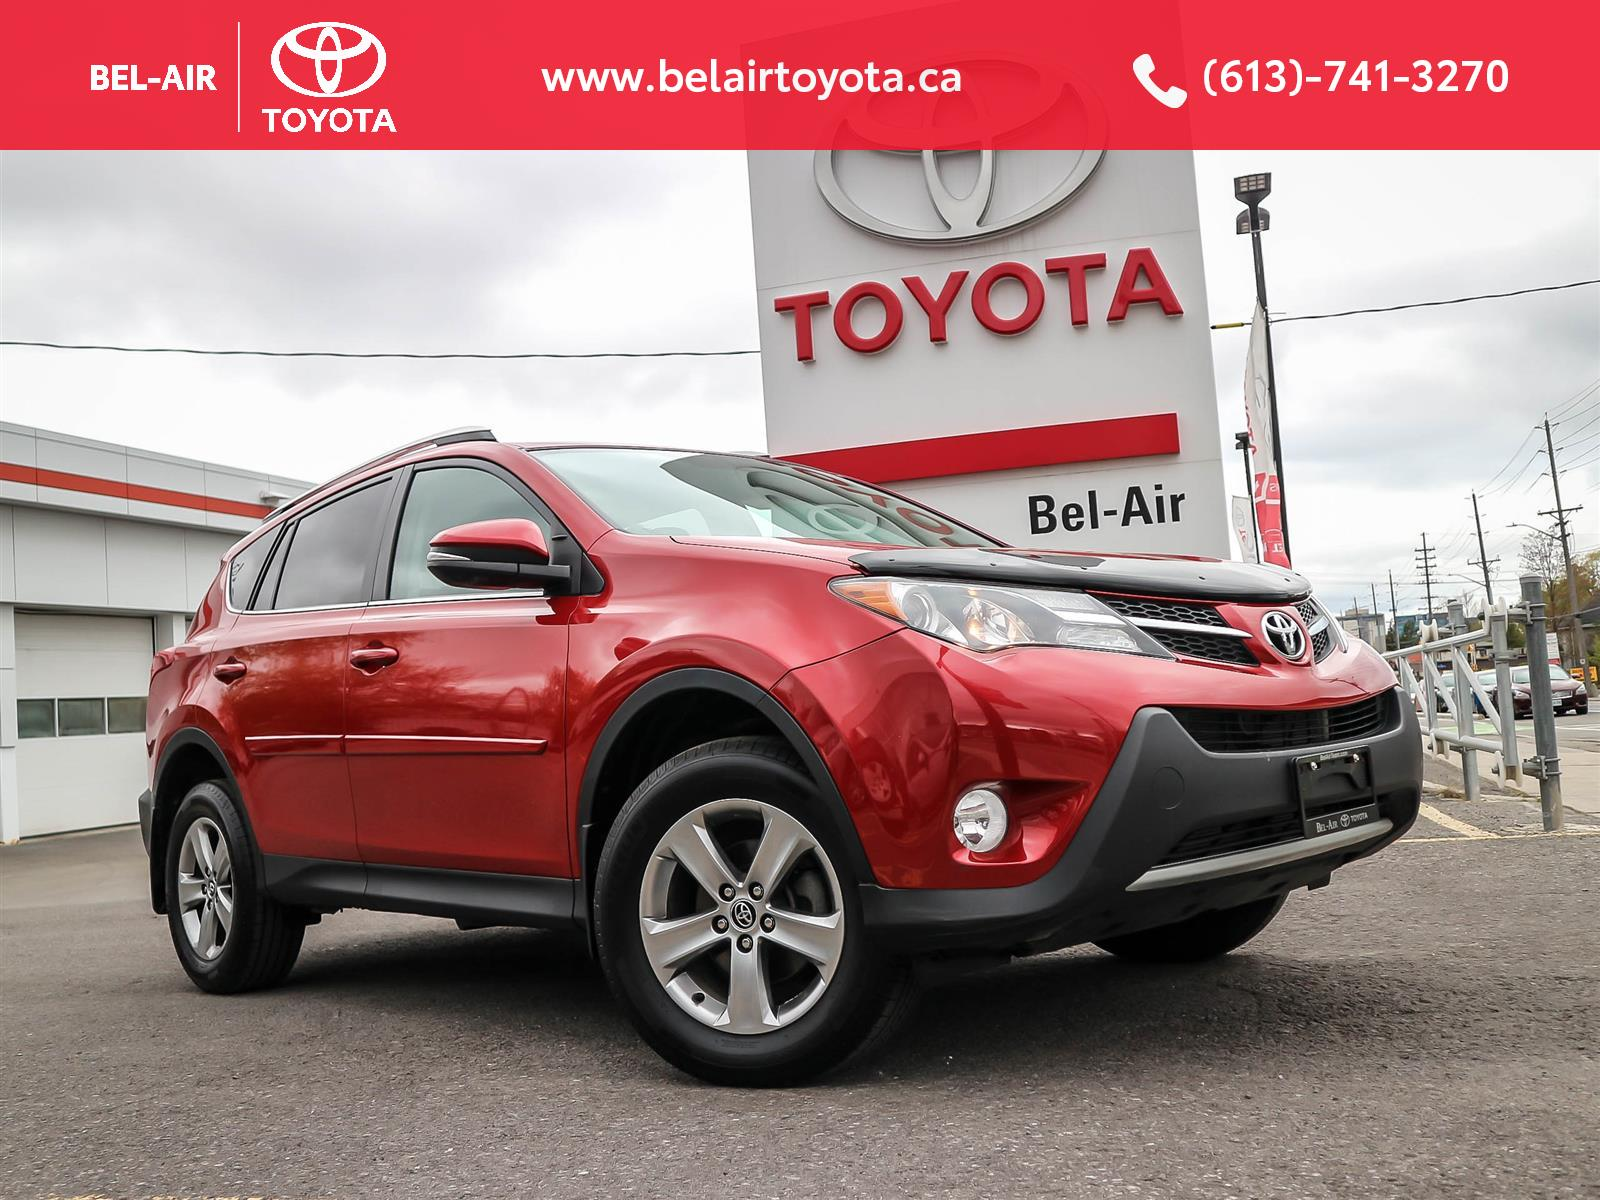 2015 Toyota RAV4 at Bel-Air Lexus